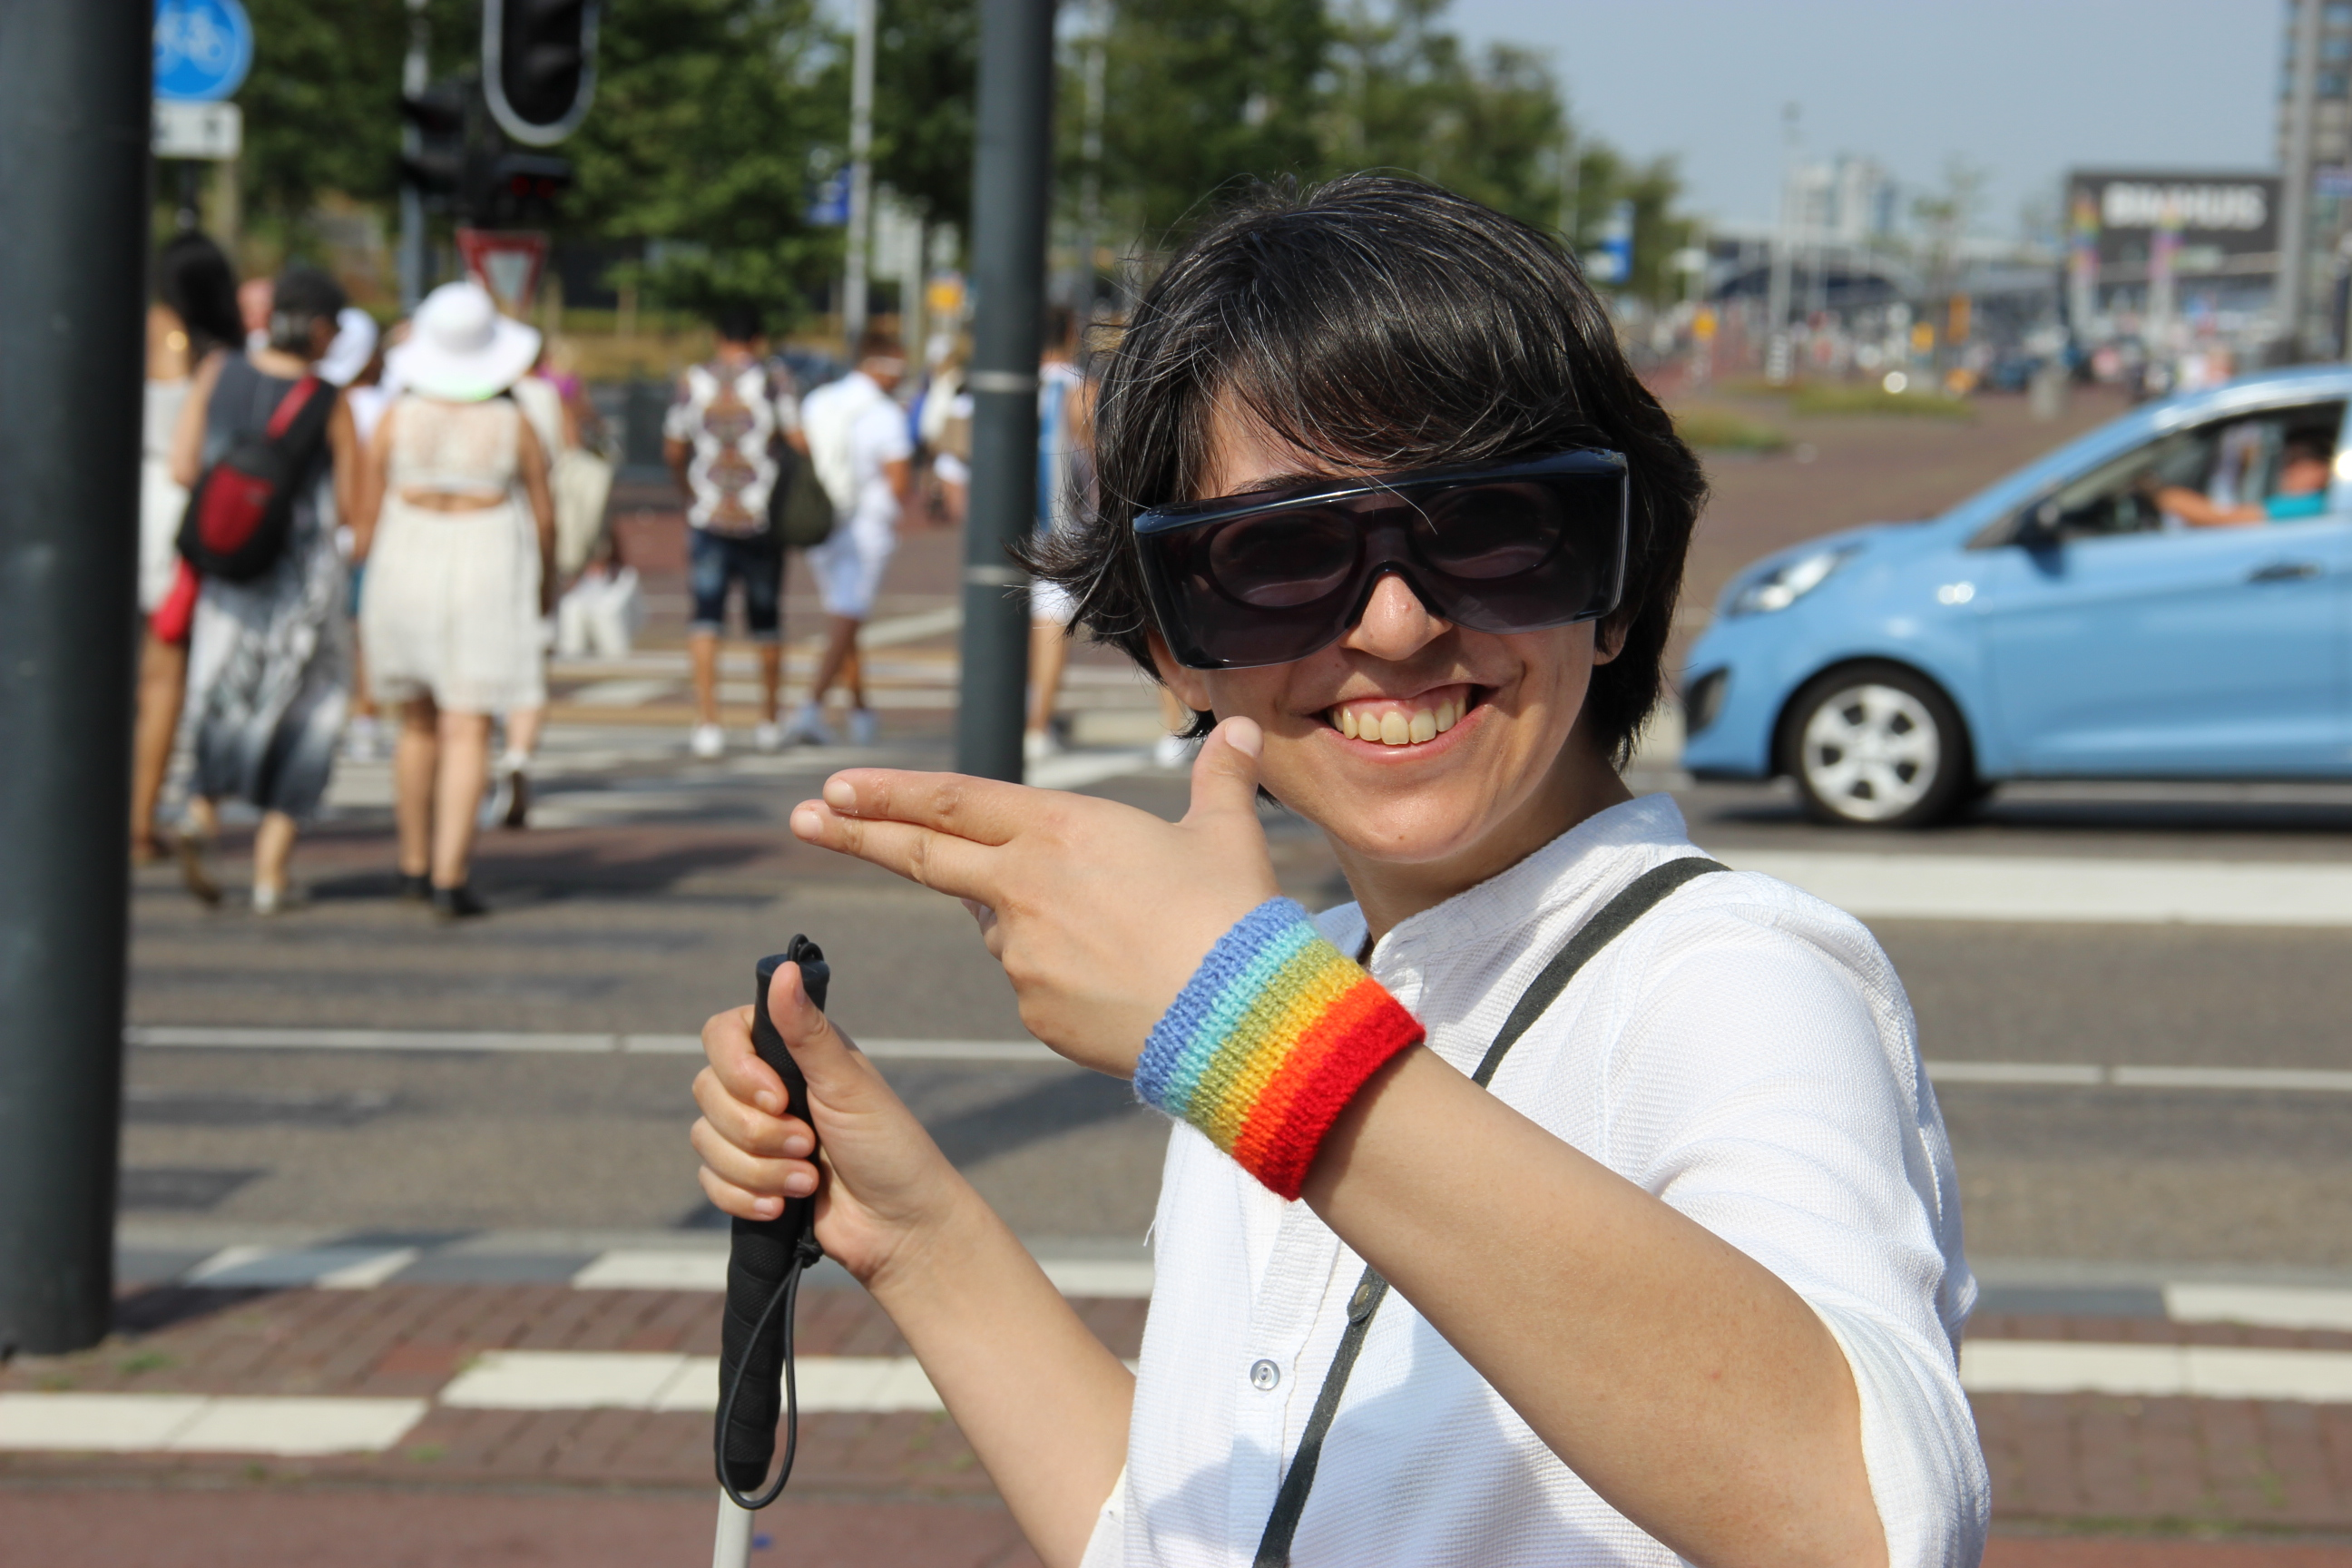 Elham Malekpoor on the way to Iran Boat in Amsterdam Pride 2018